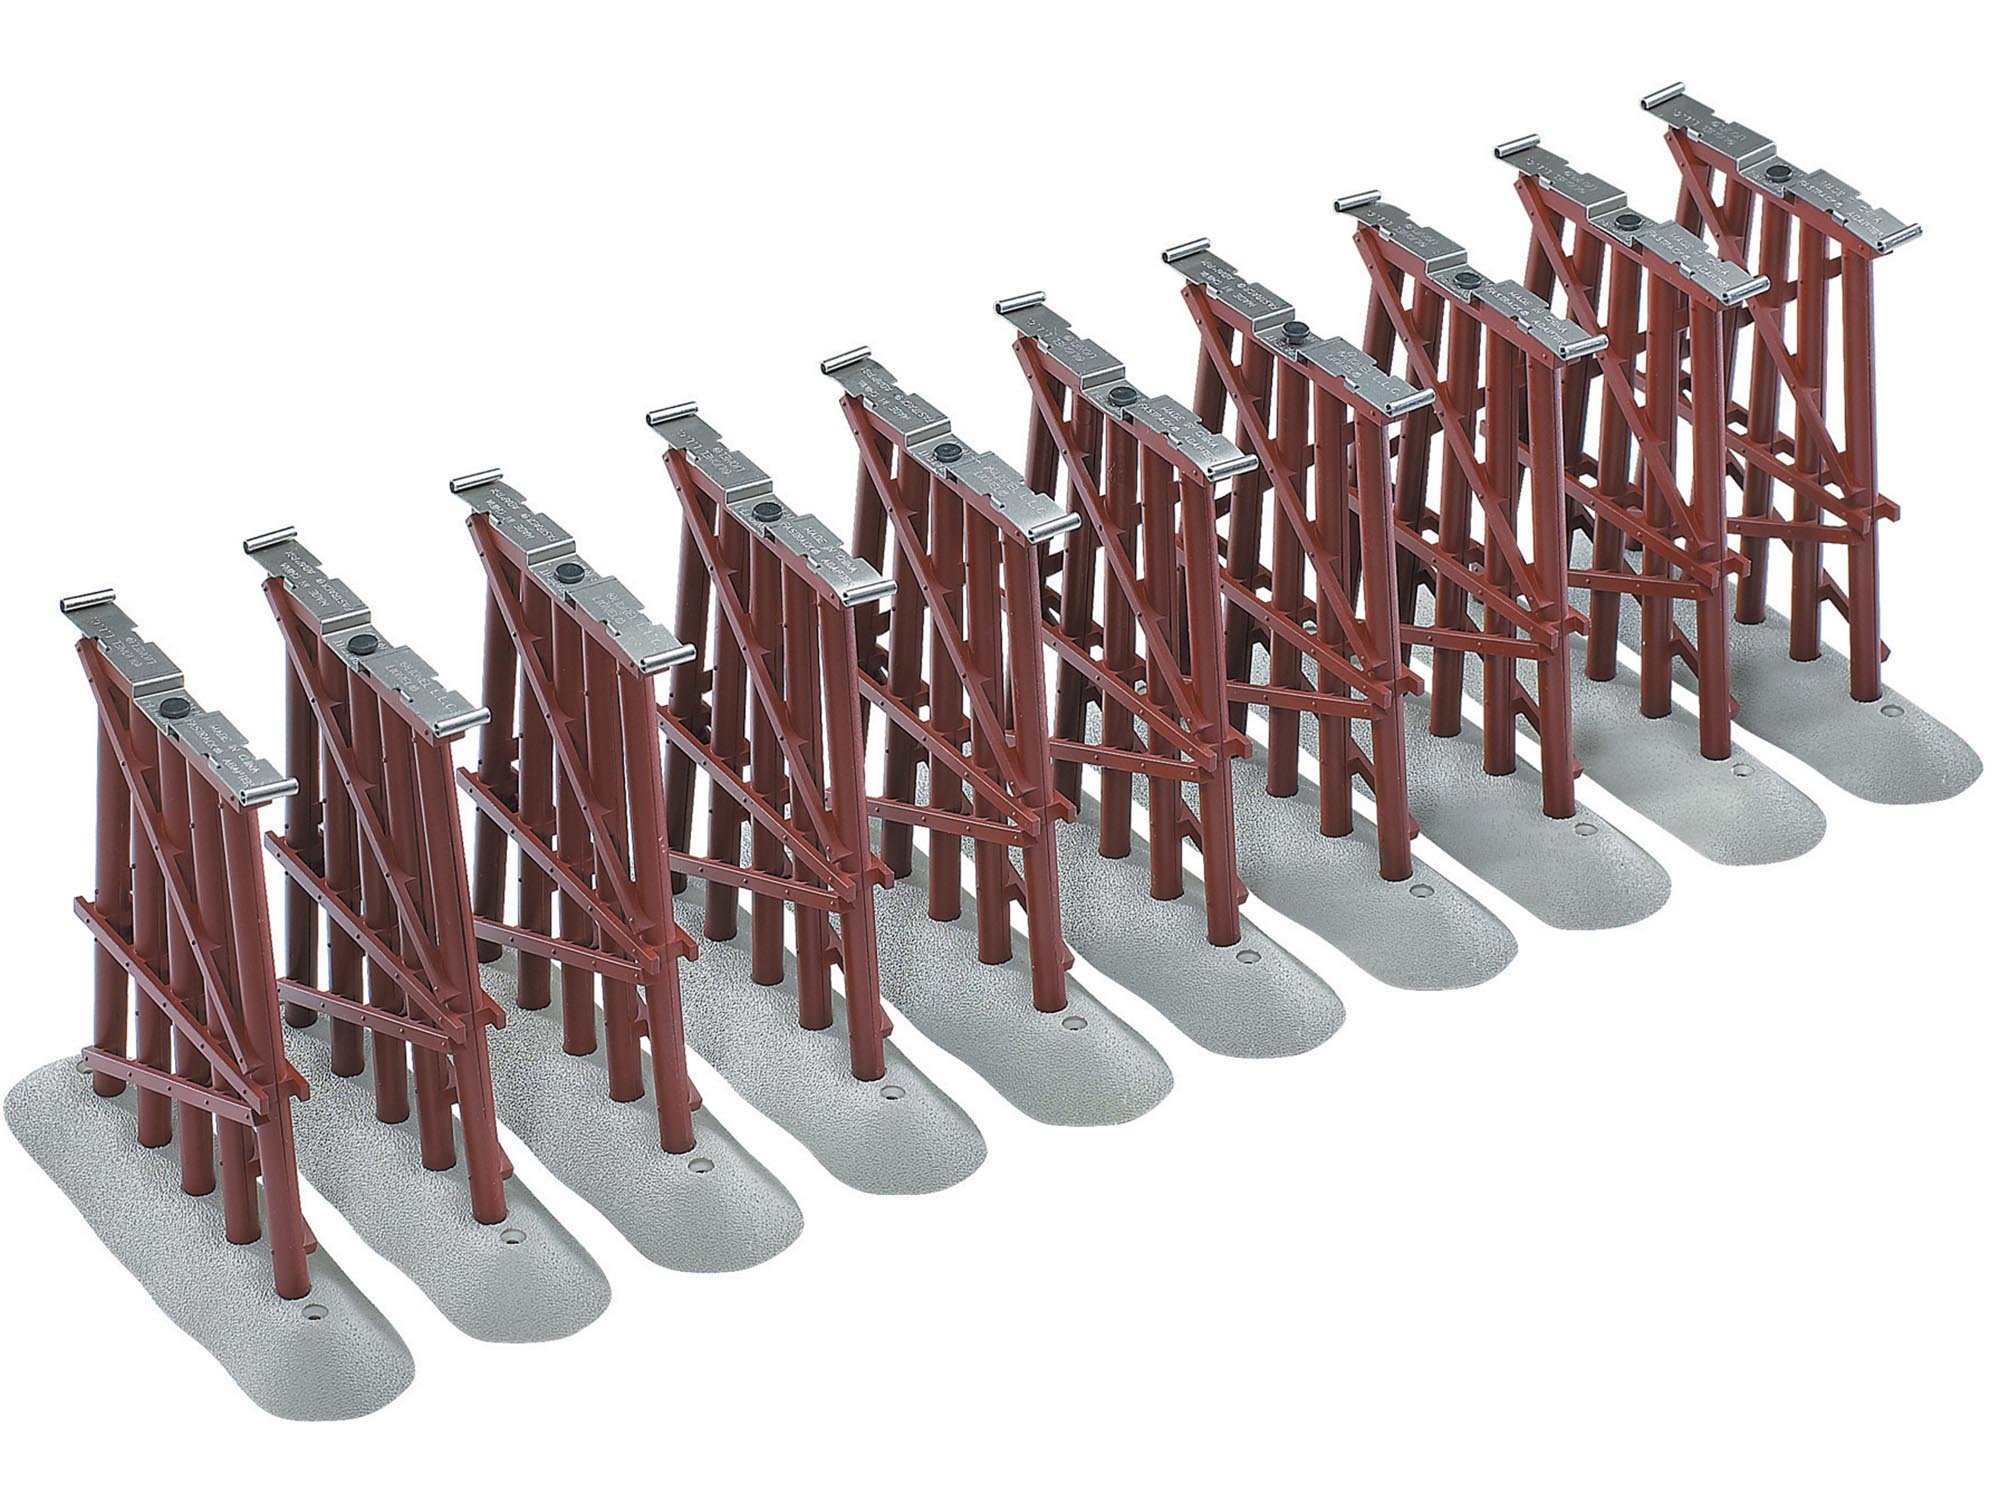 6-12038 FASTRACK ELEVATED TRESTLE SET